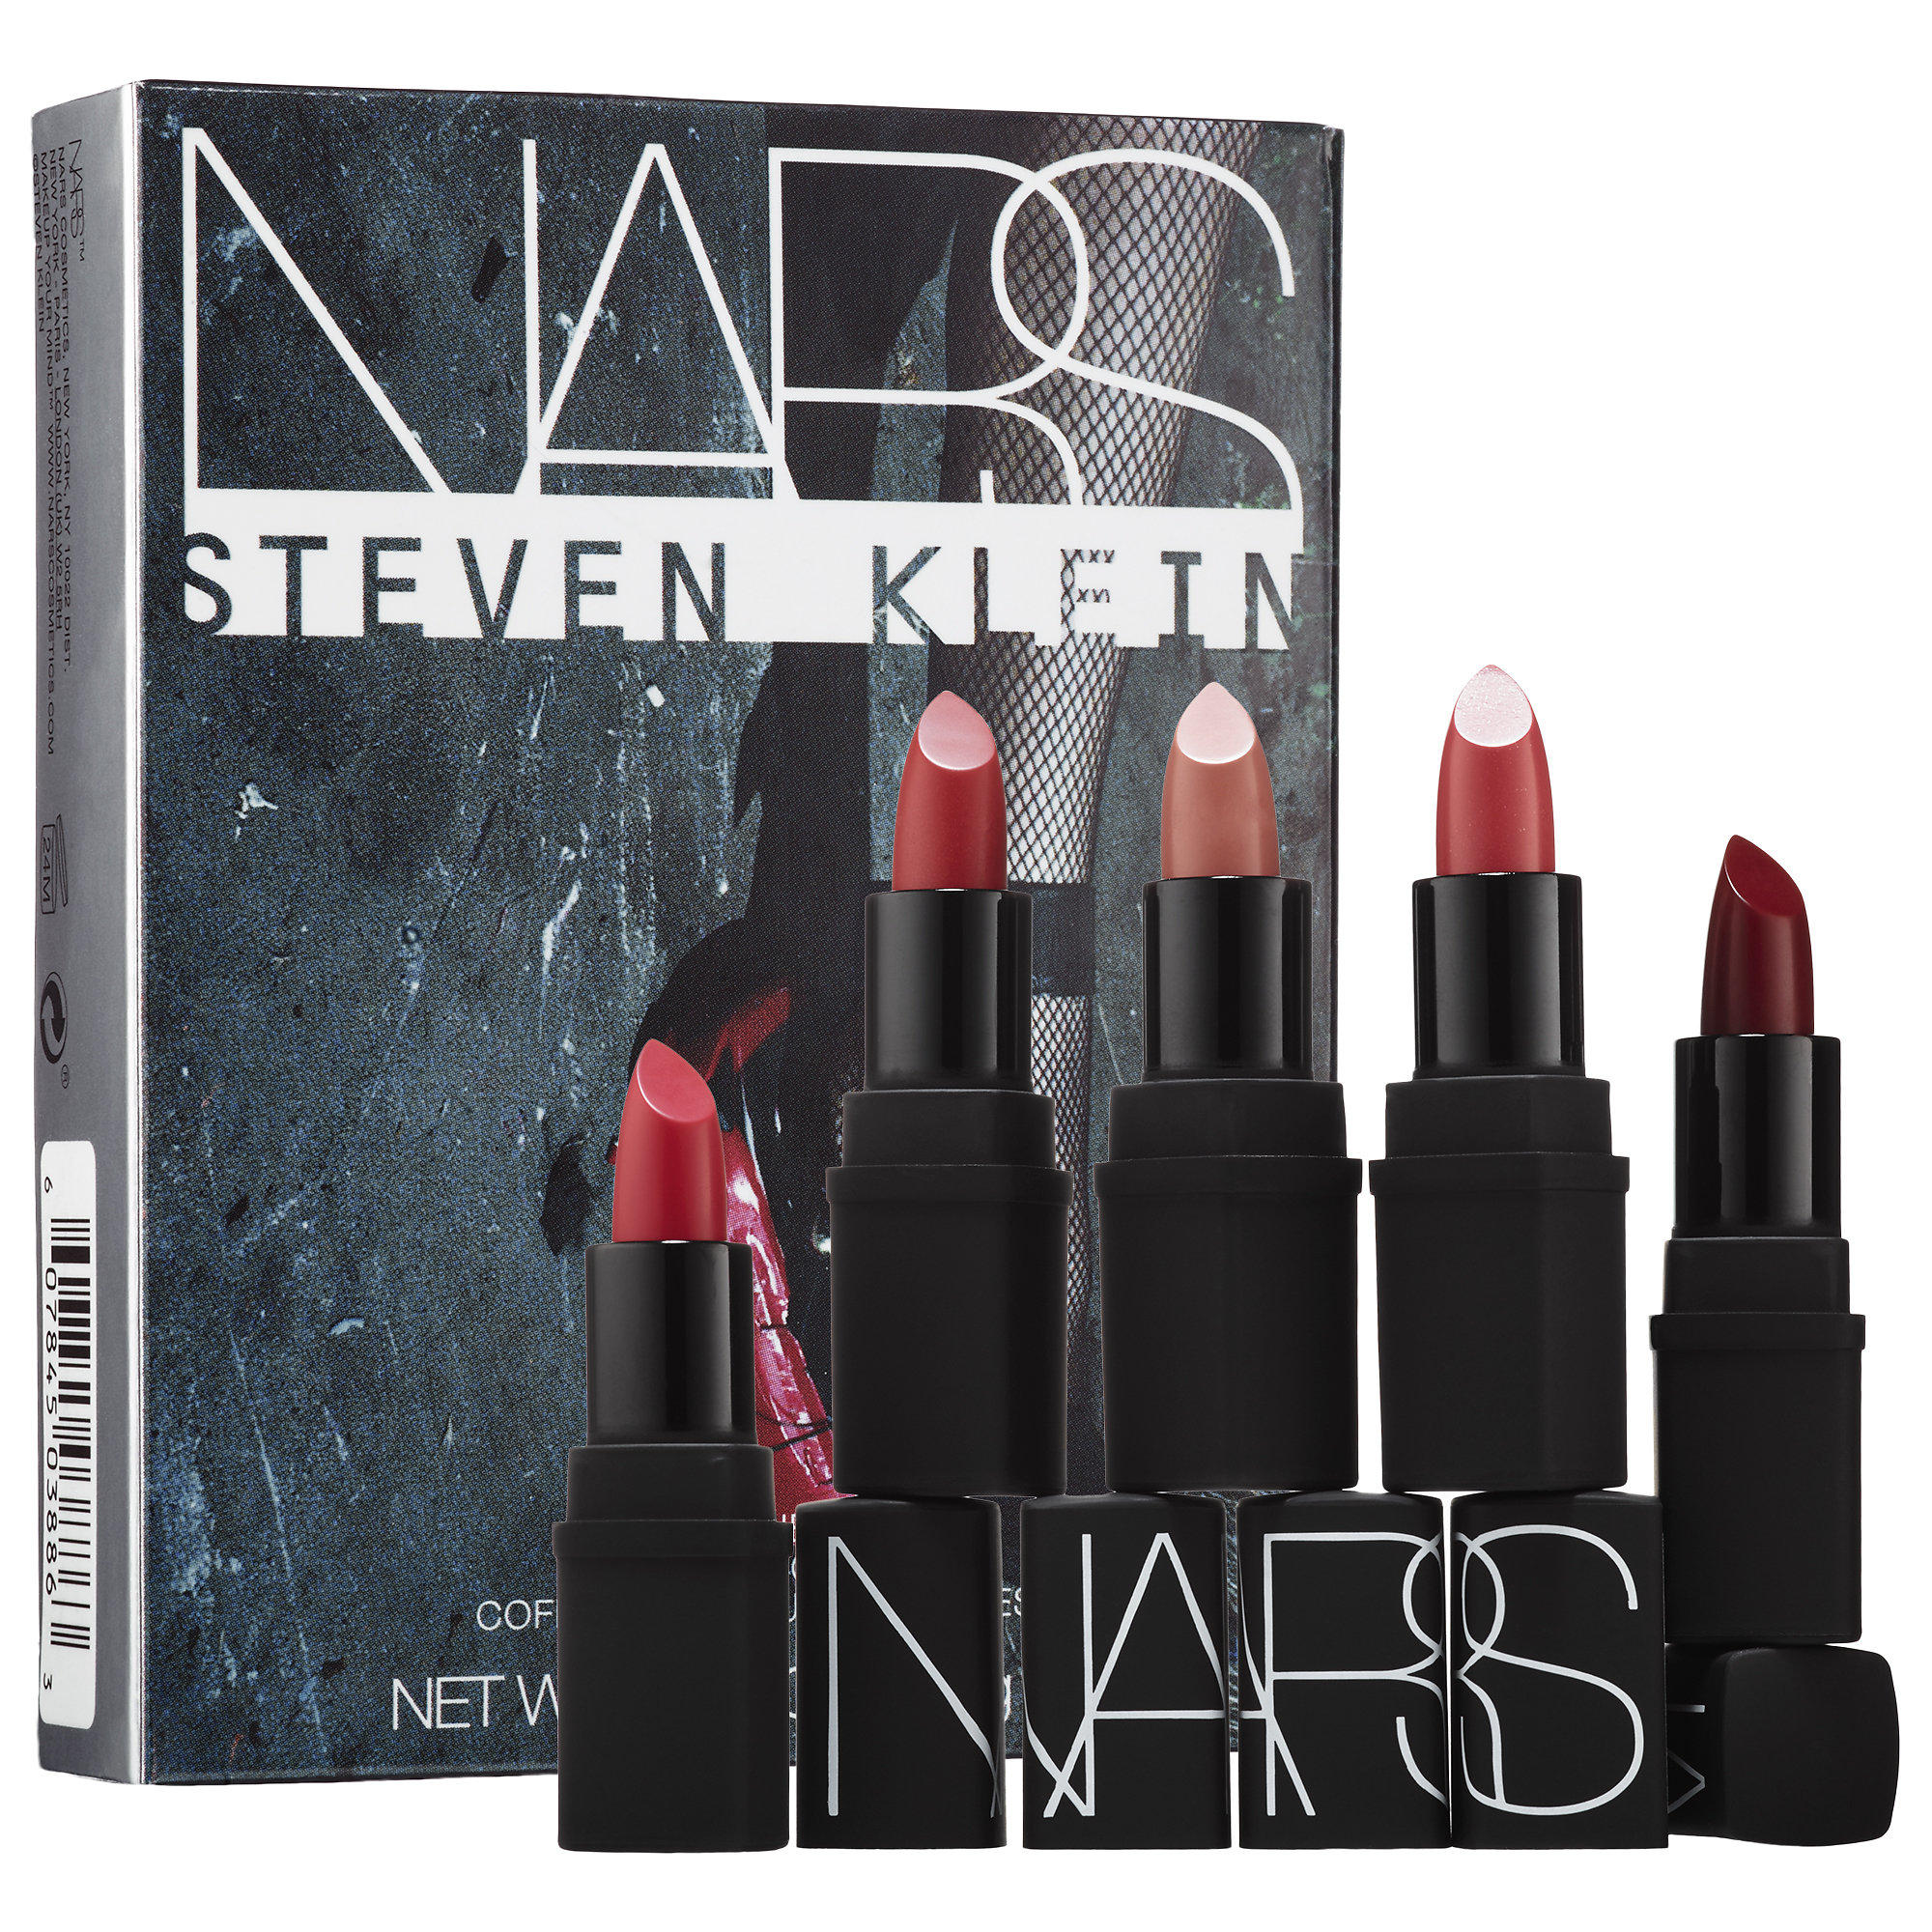 New Release Nars launched New Steven Klein Collaboration Killer Heels Lipstick Coffret